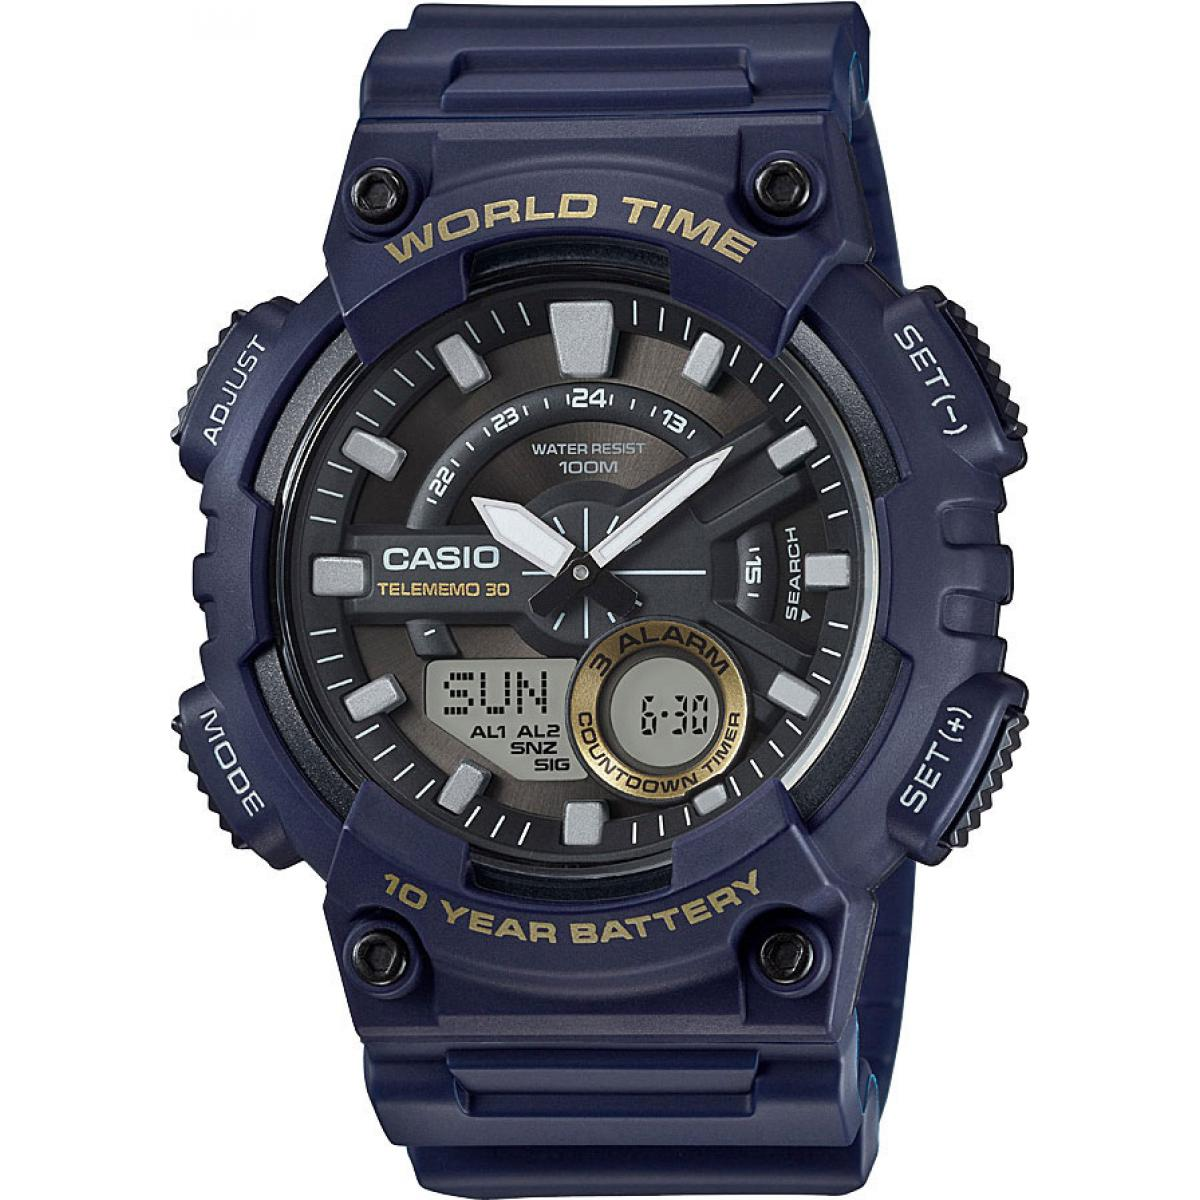 Montre Casio Collection AEQ-110W-2AVEF - Montre Décennale Bleue Homme